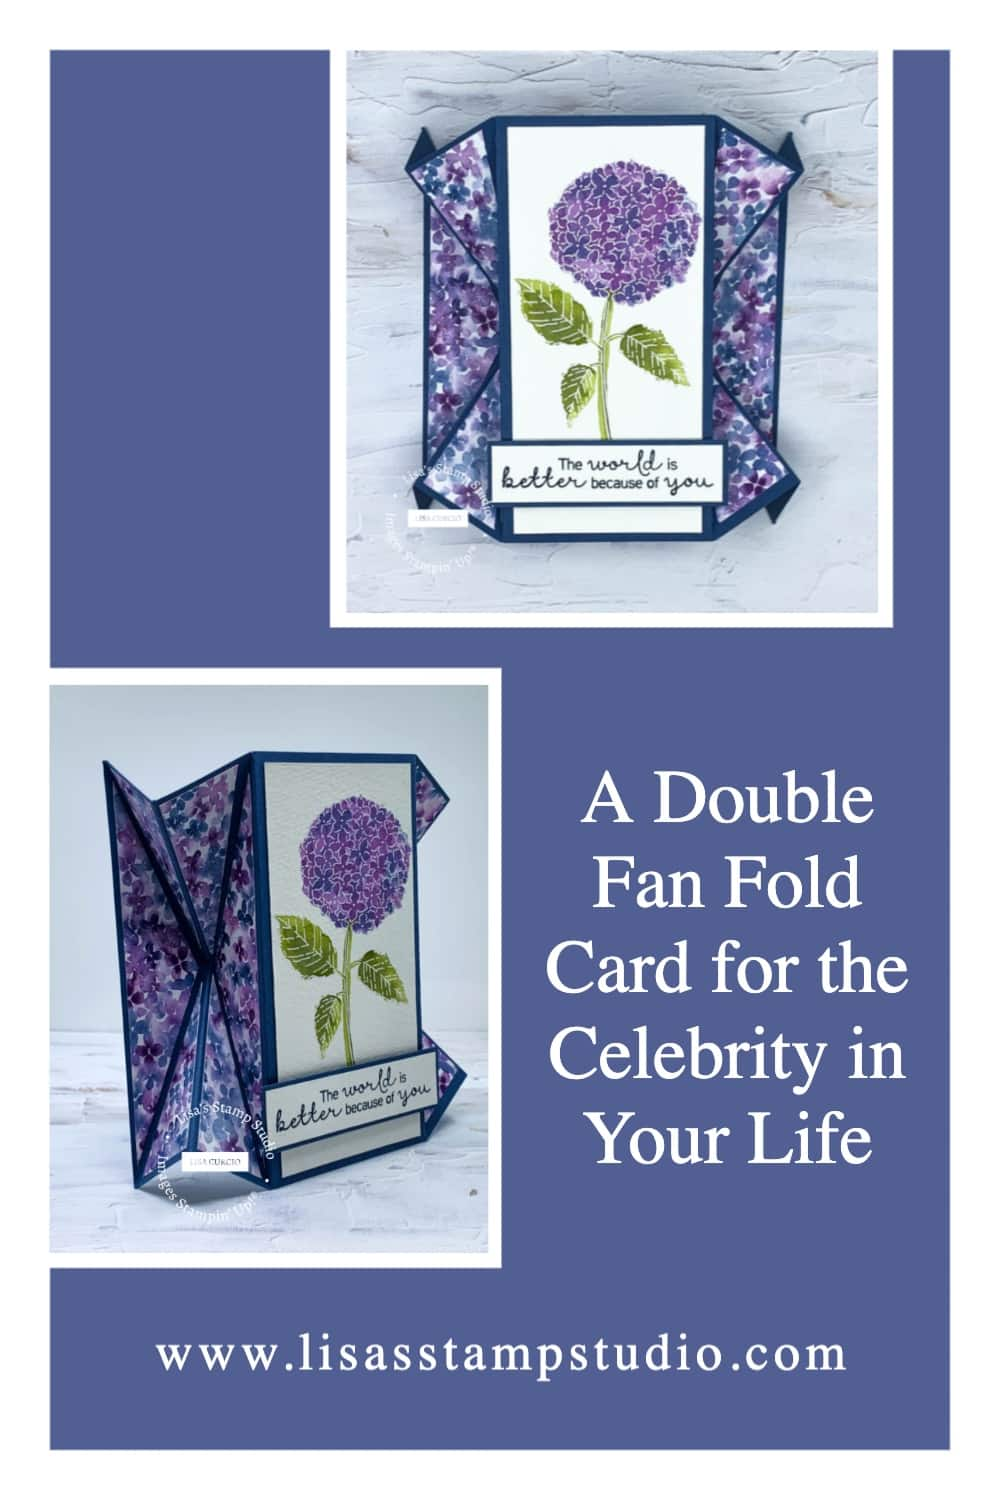 A double fan fold card for the celebrity in your life pinterest idea.